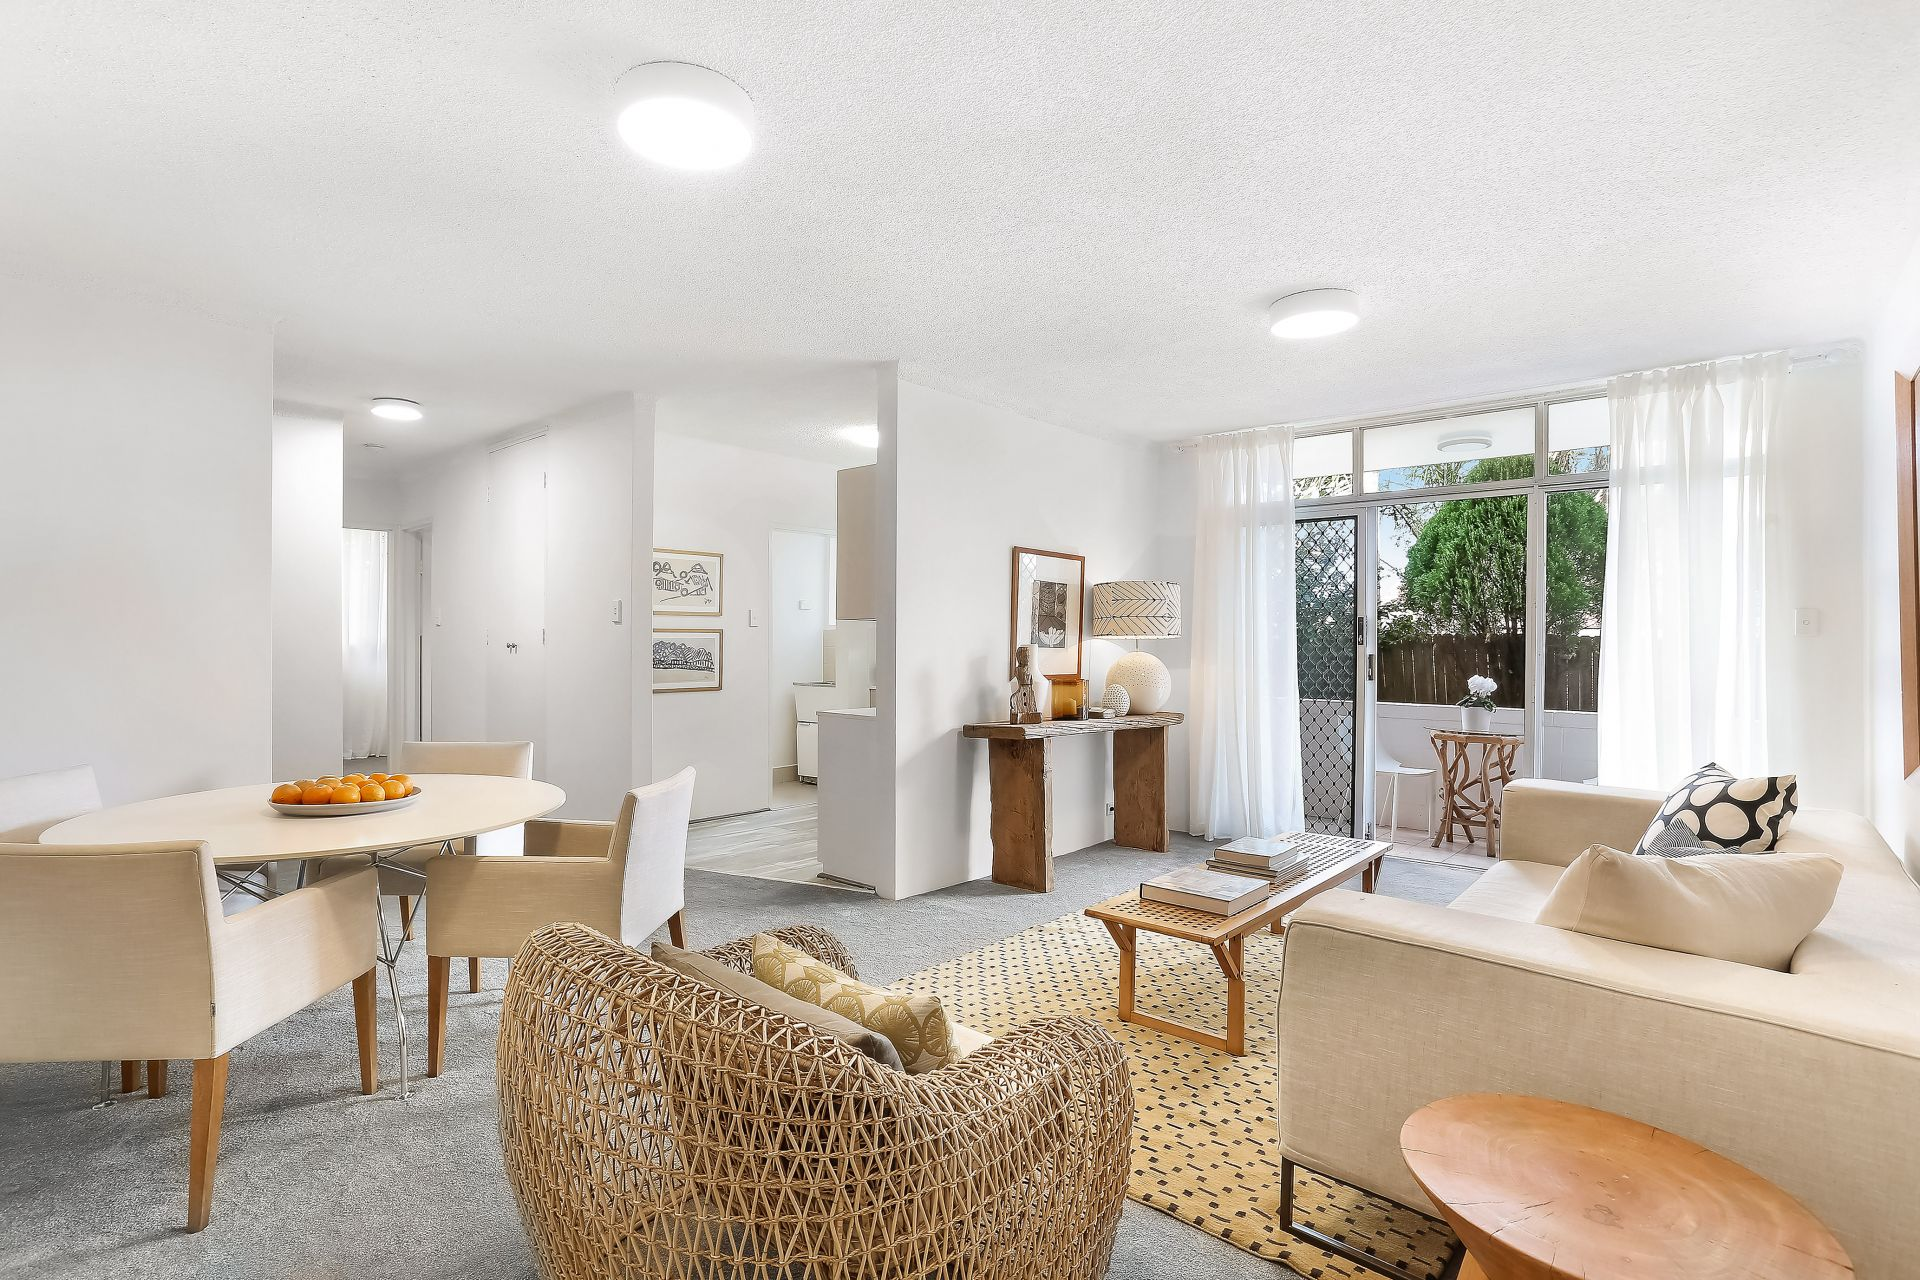 Substantial Ground Floor Apartment With Garden Access